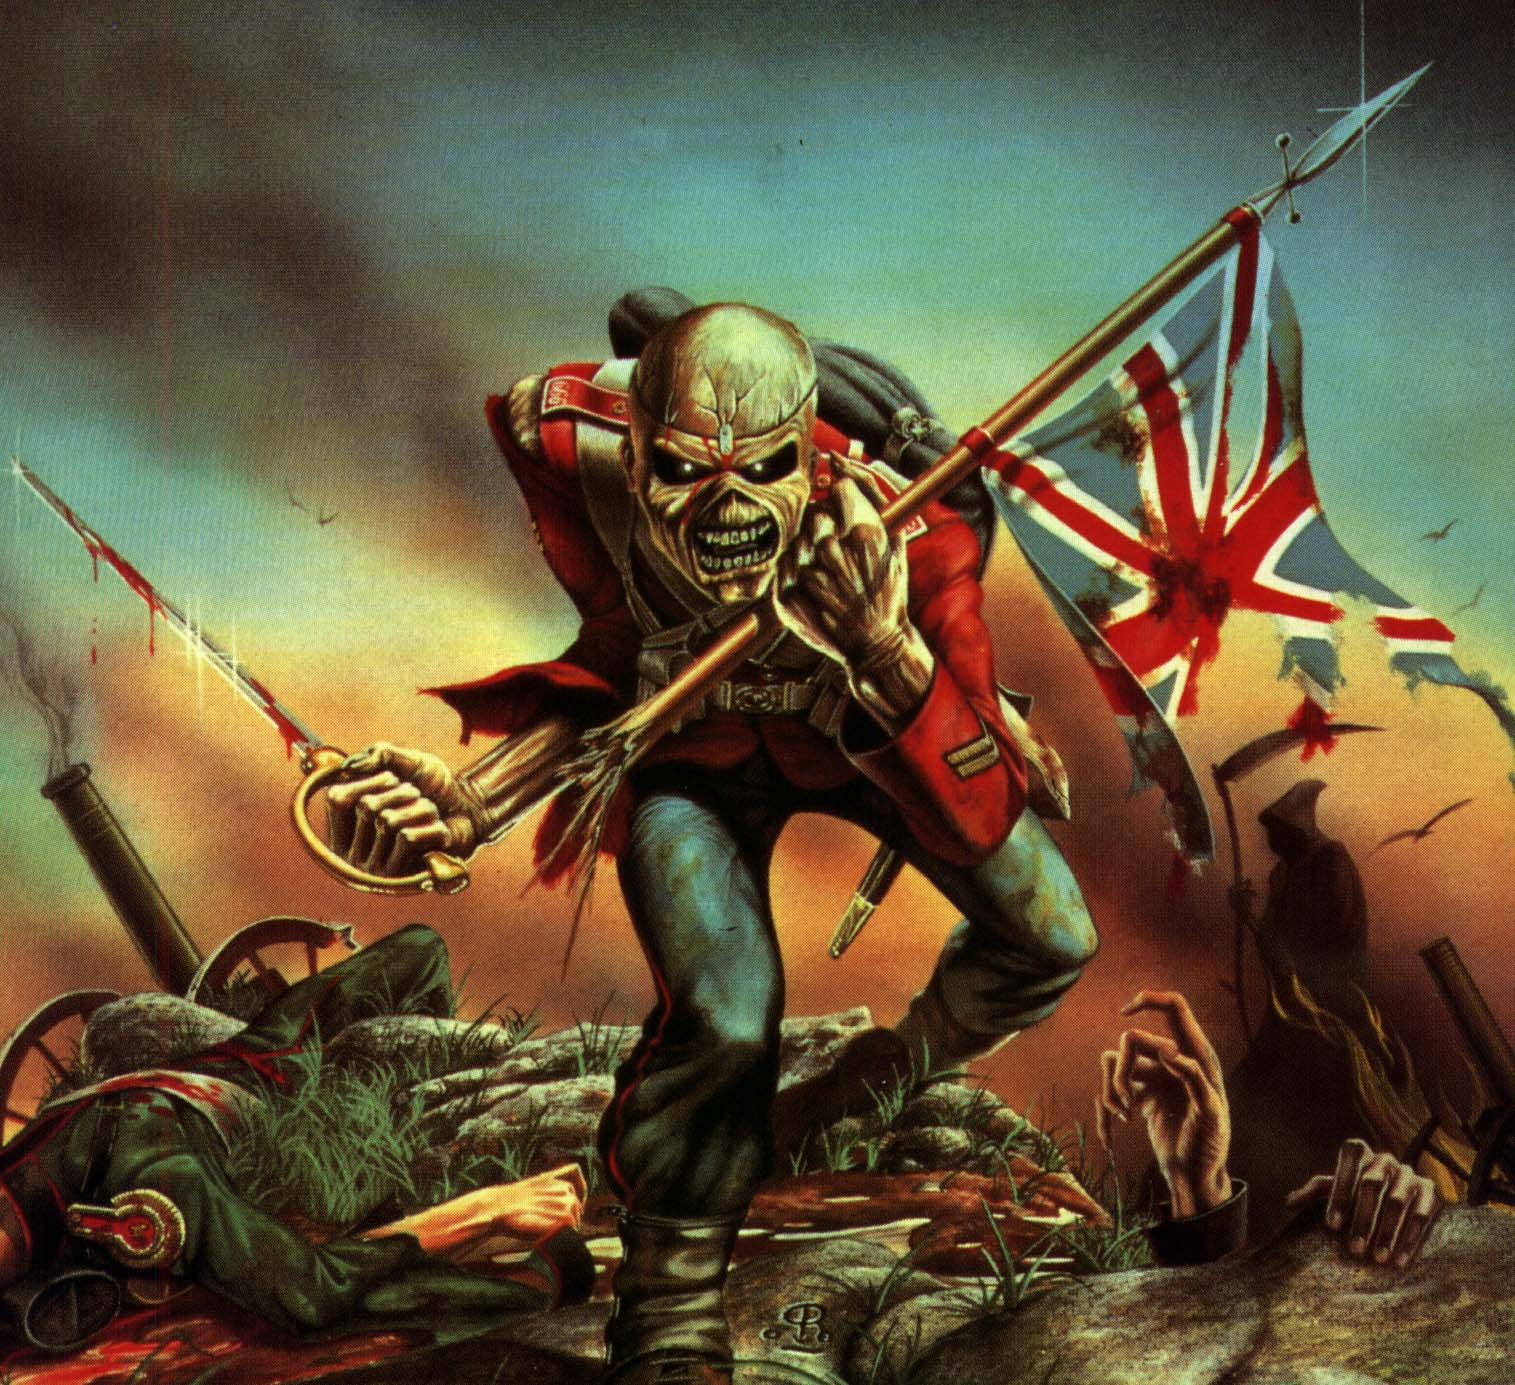 Iron Maiden The Trooper Iron maide Iron Maiden Trooper Wallpaper